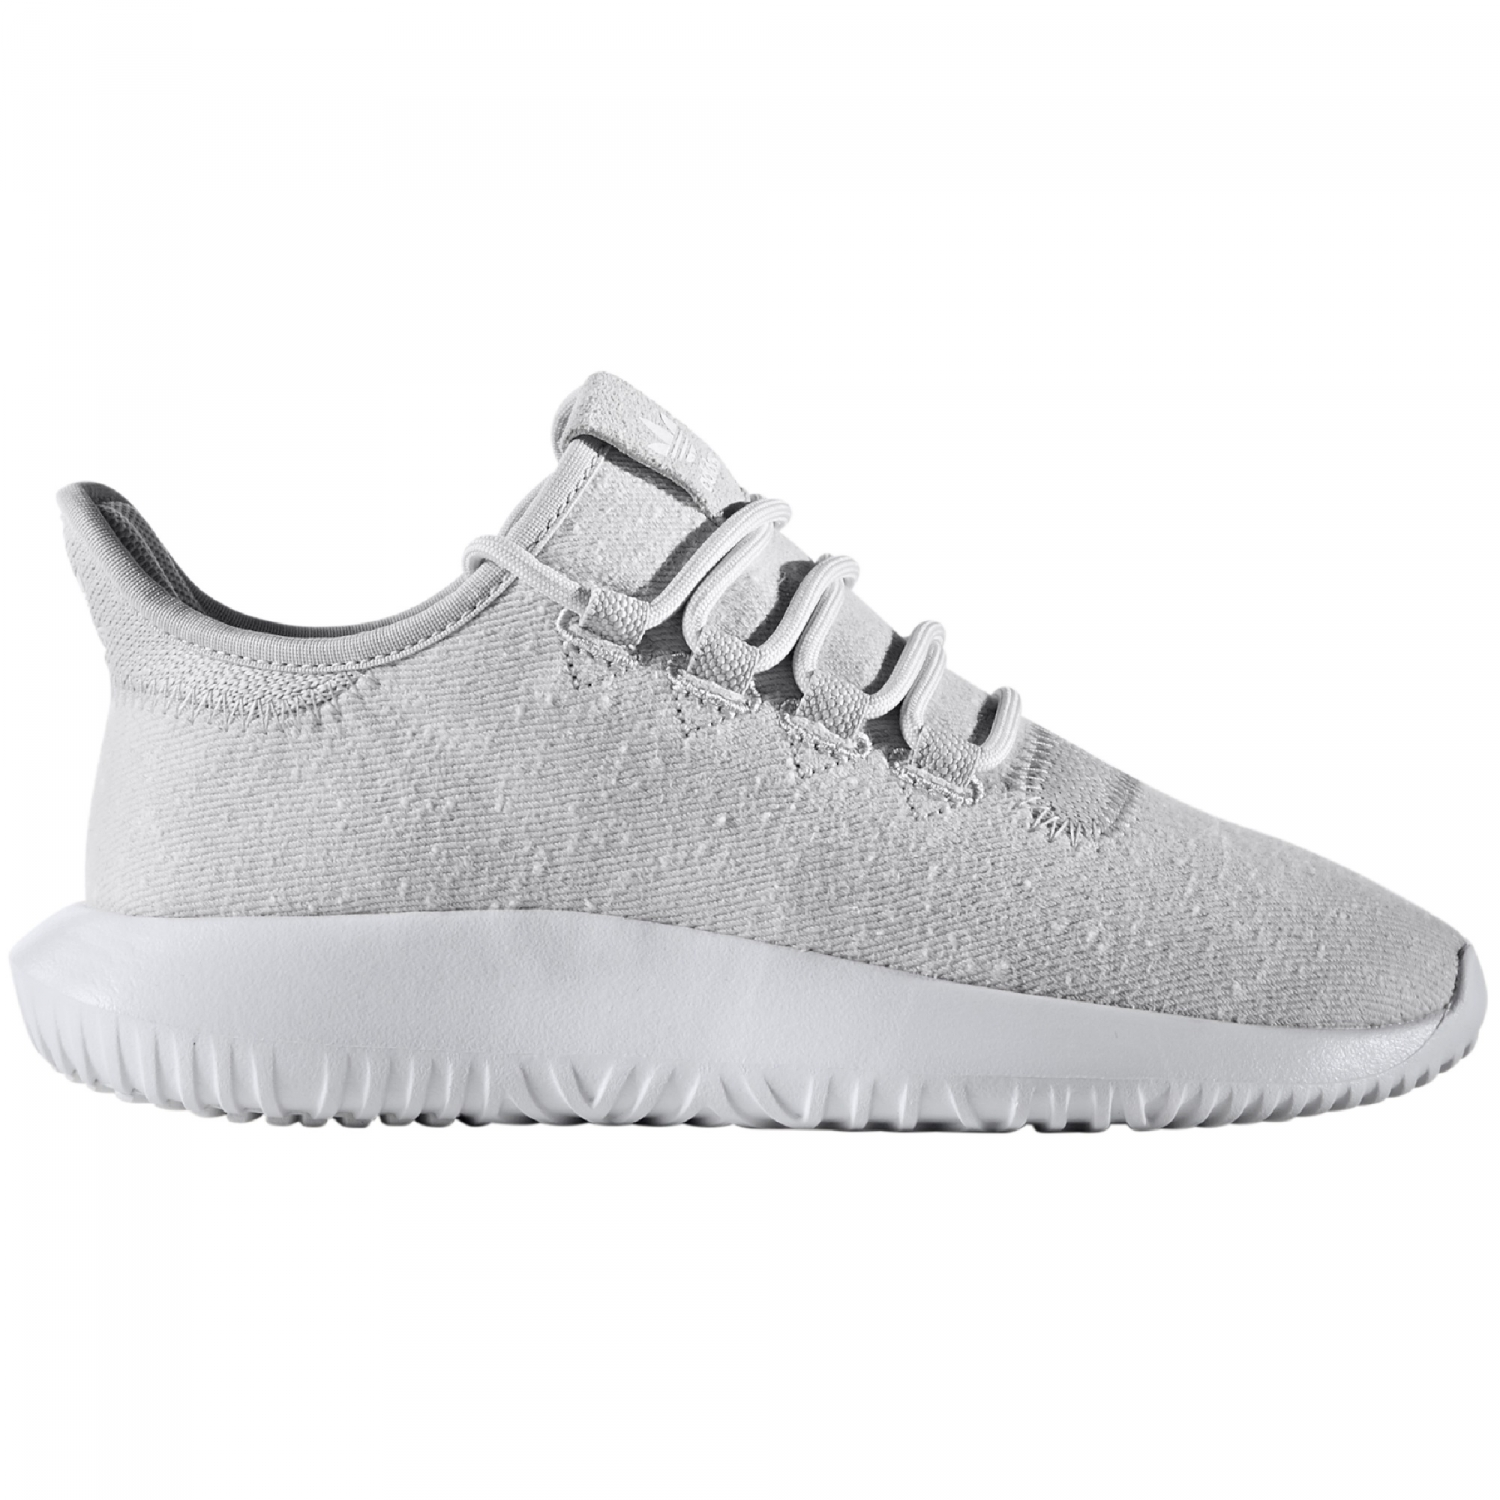 adidas Originals Tubular Shadow Sneaker Kinder Schuhe grau wei